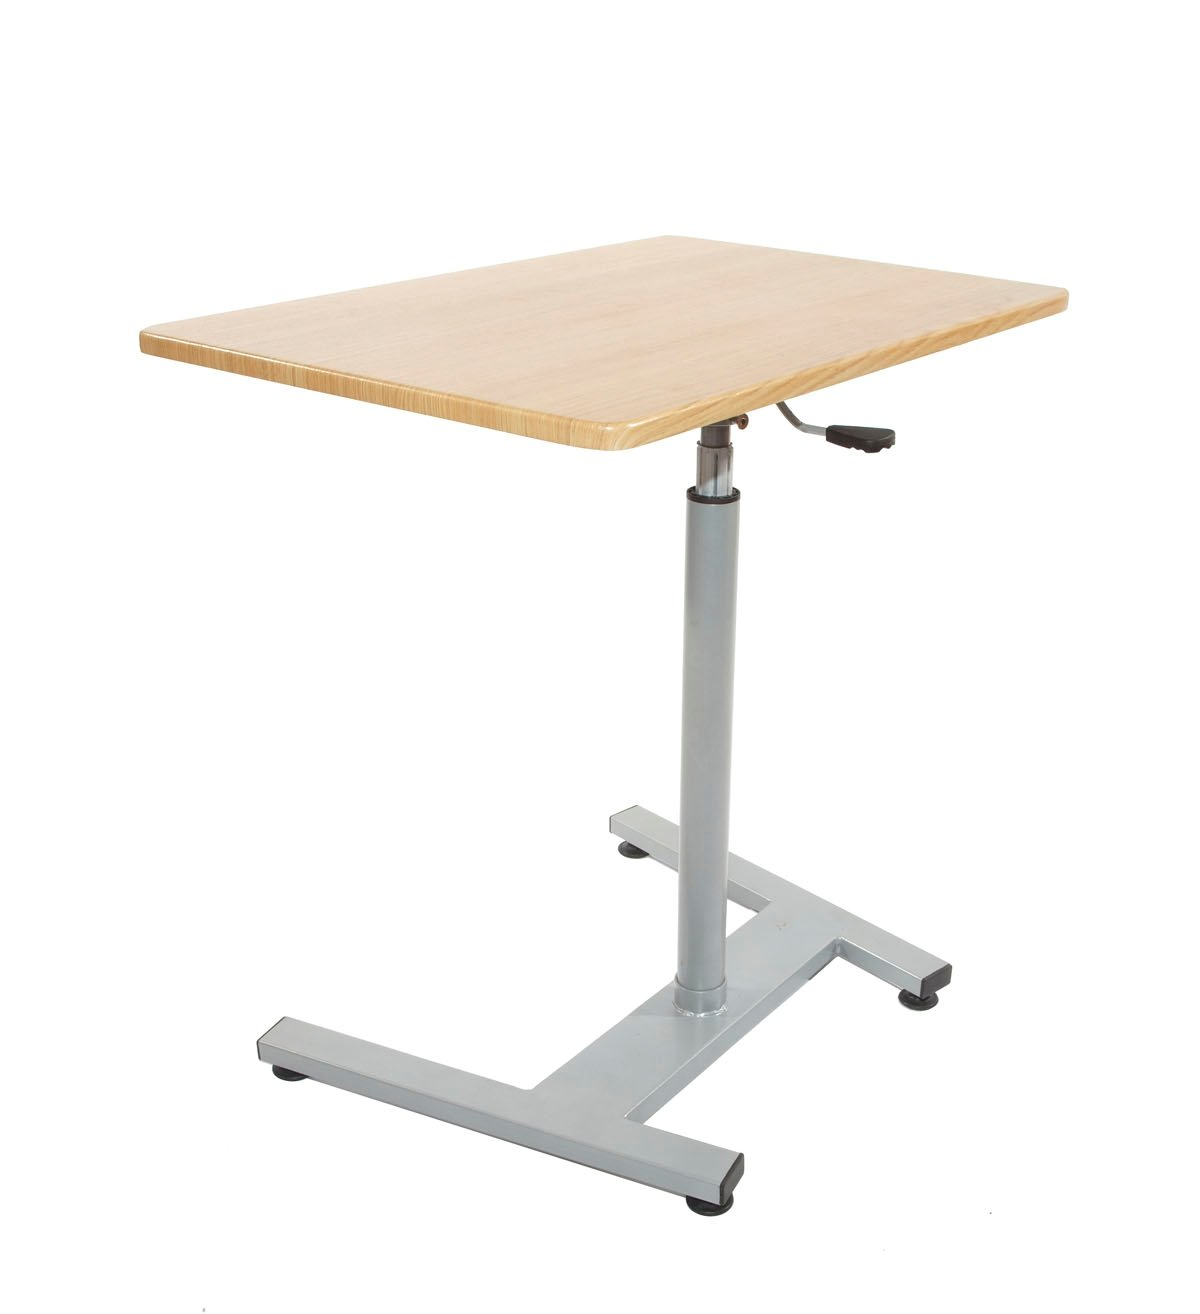 T-Zone TS-1 Sit-To-Standing Desk (Cherry), Ergonomic, Pneumatic Gas Lift Height-Adjustable Desk, 20-Inch by 30-Inch, for Use with Laptop, Computer, or for Sit-Stand Desk and Work Surface, Home or Office Use T-Zone Health